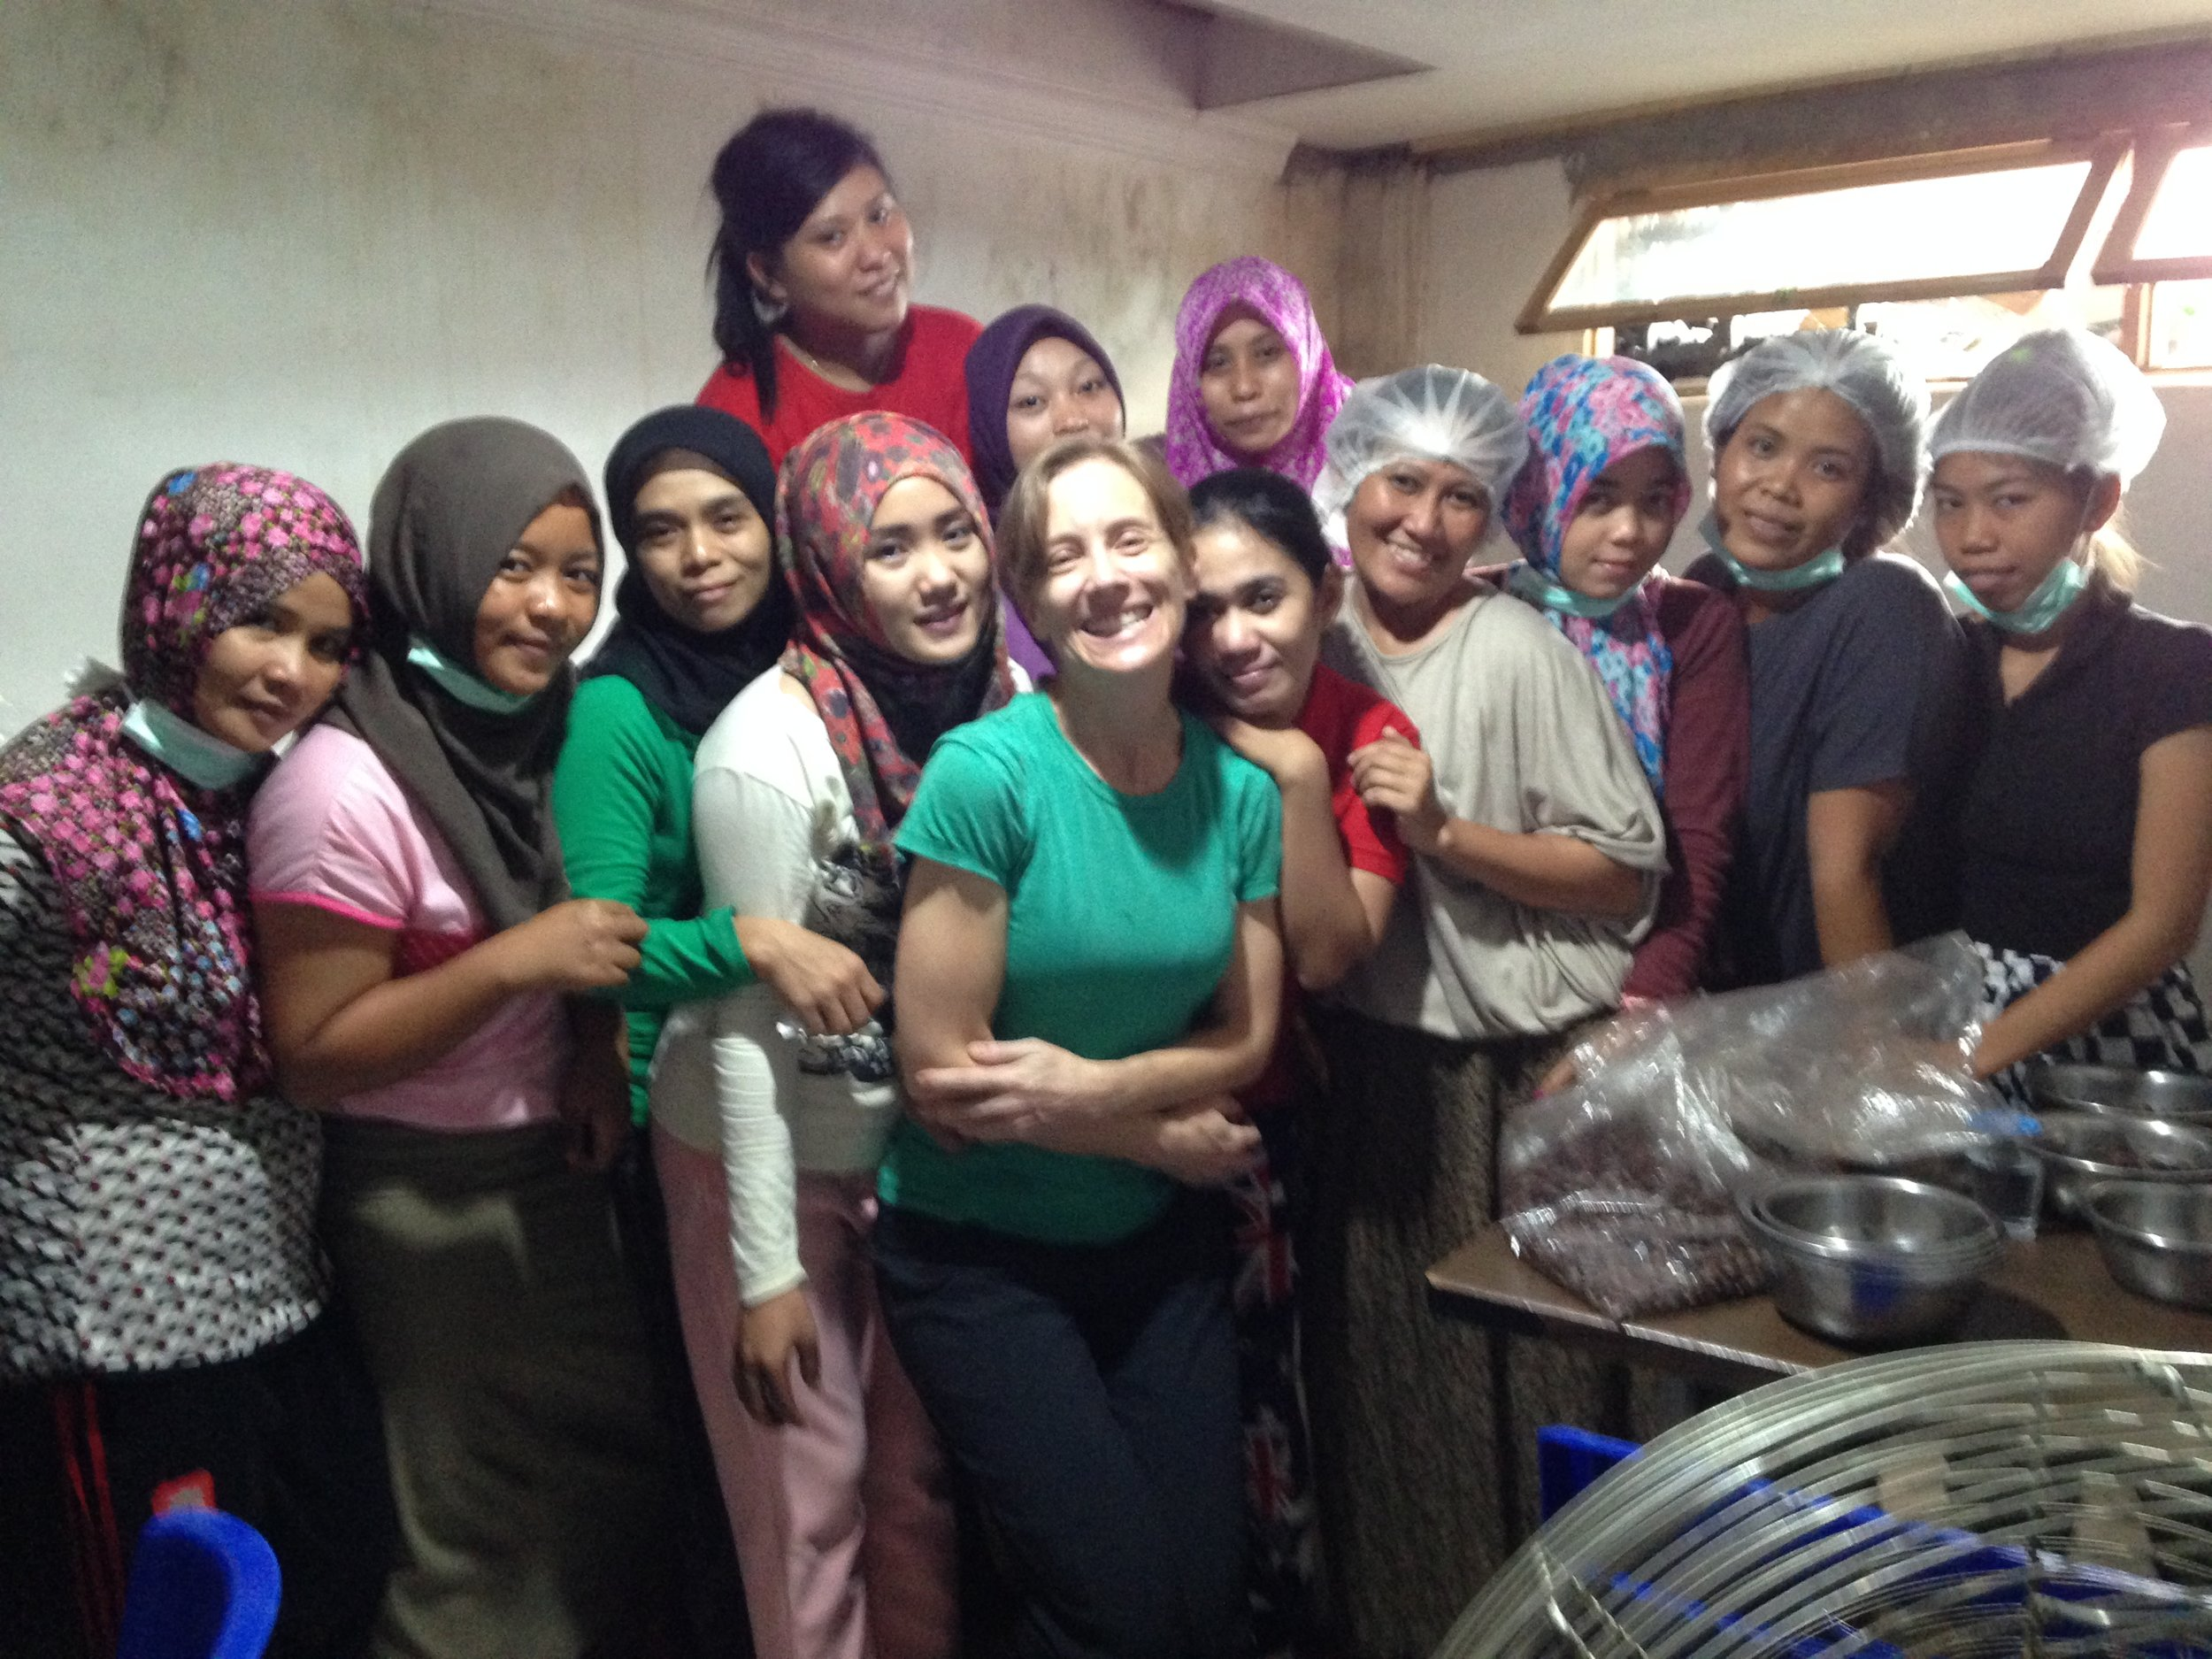 Cokelat-Chalodo-Gourmet-Snacking-Cacao-cocoa-snack-processors-hand-shelled-peeled-cocoa-beans-women-empowerment